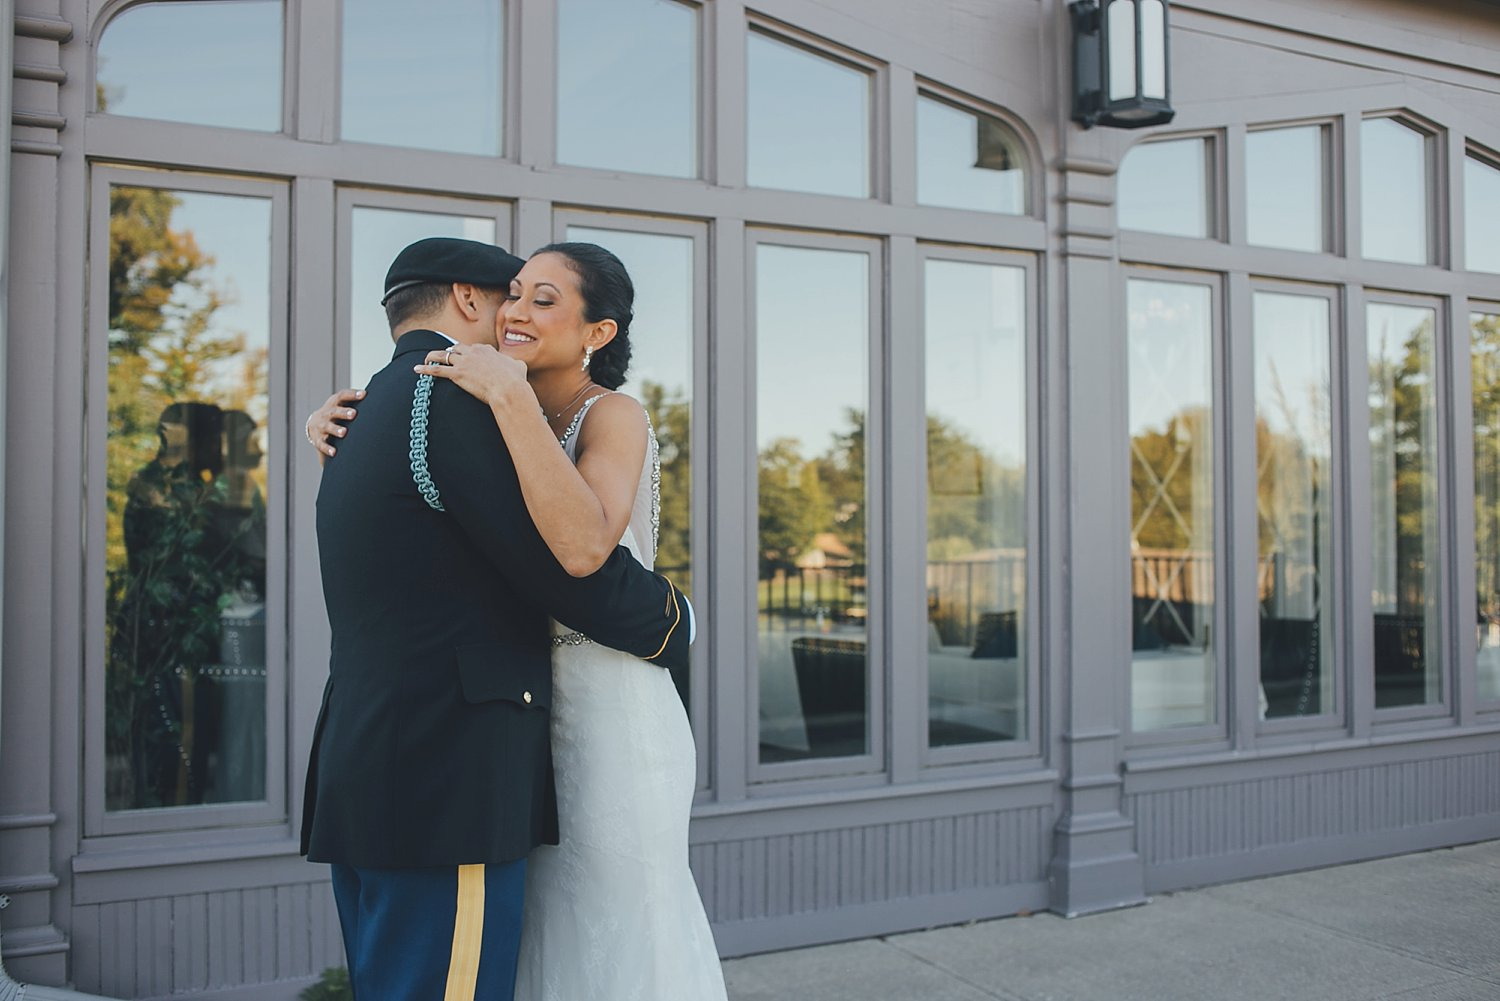 nyc-wedding-photography-nj-tri-state-cinematography-intothestory-by-moo-jae_0190.jpg